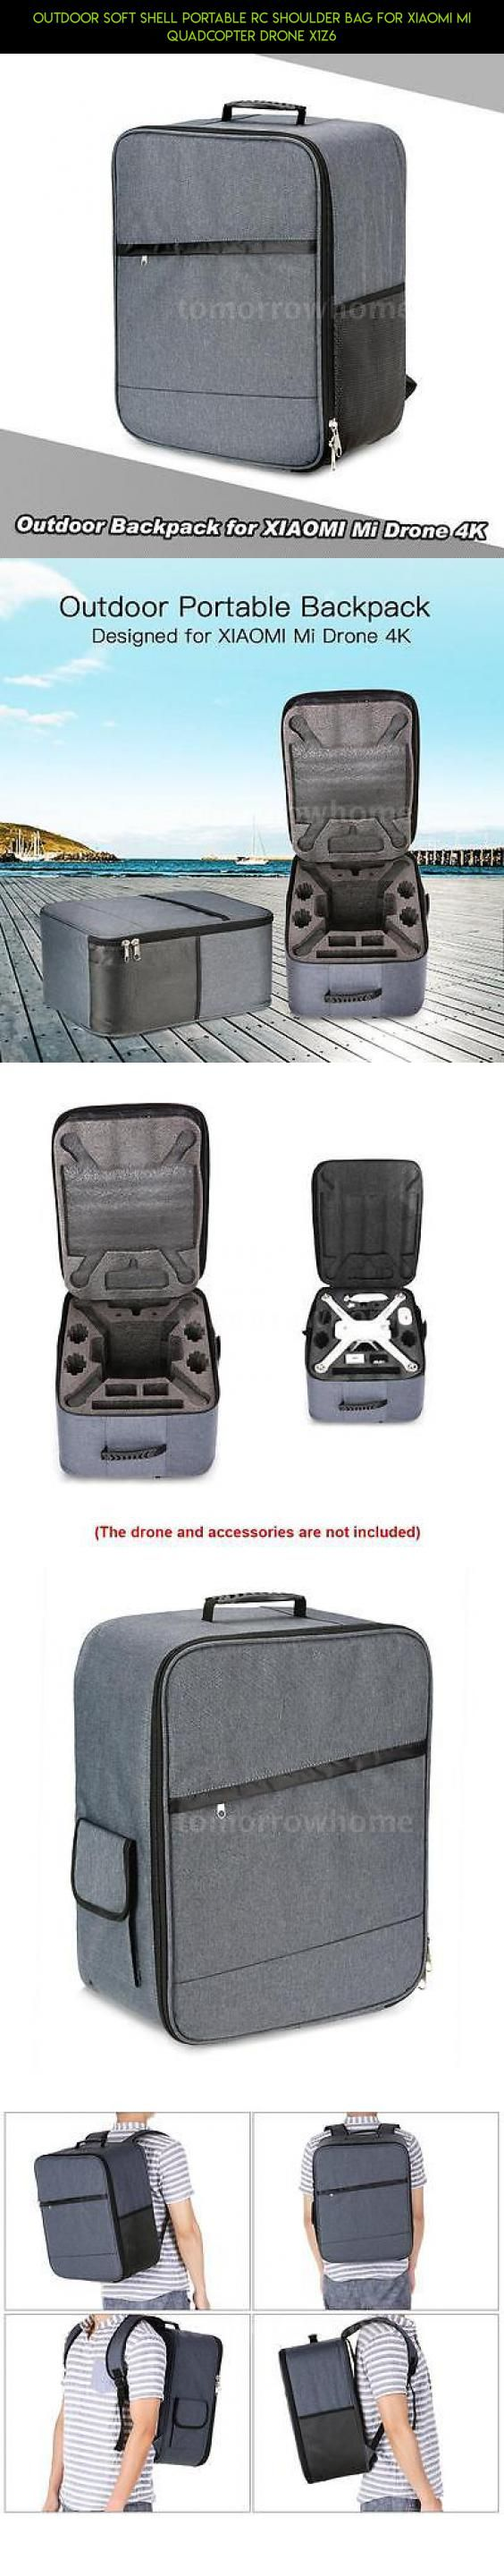 Outdoor Soft Shell Portable RC Shoulder Bag for XIAOMI Mi Quadcopter Drone X1Z6 #gadgets #drone #fpv #kit #xiaomi #racing #plans #tech #products #shopping #technology #mi #bag #camera #parts #drone